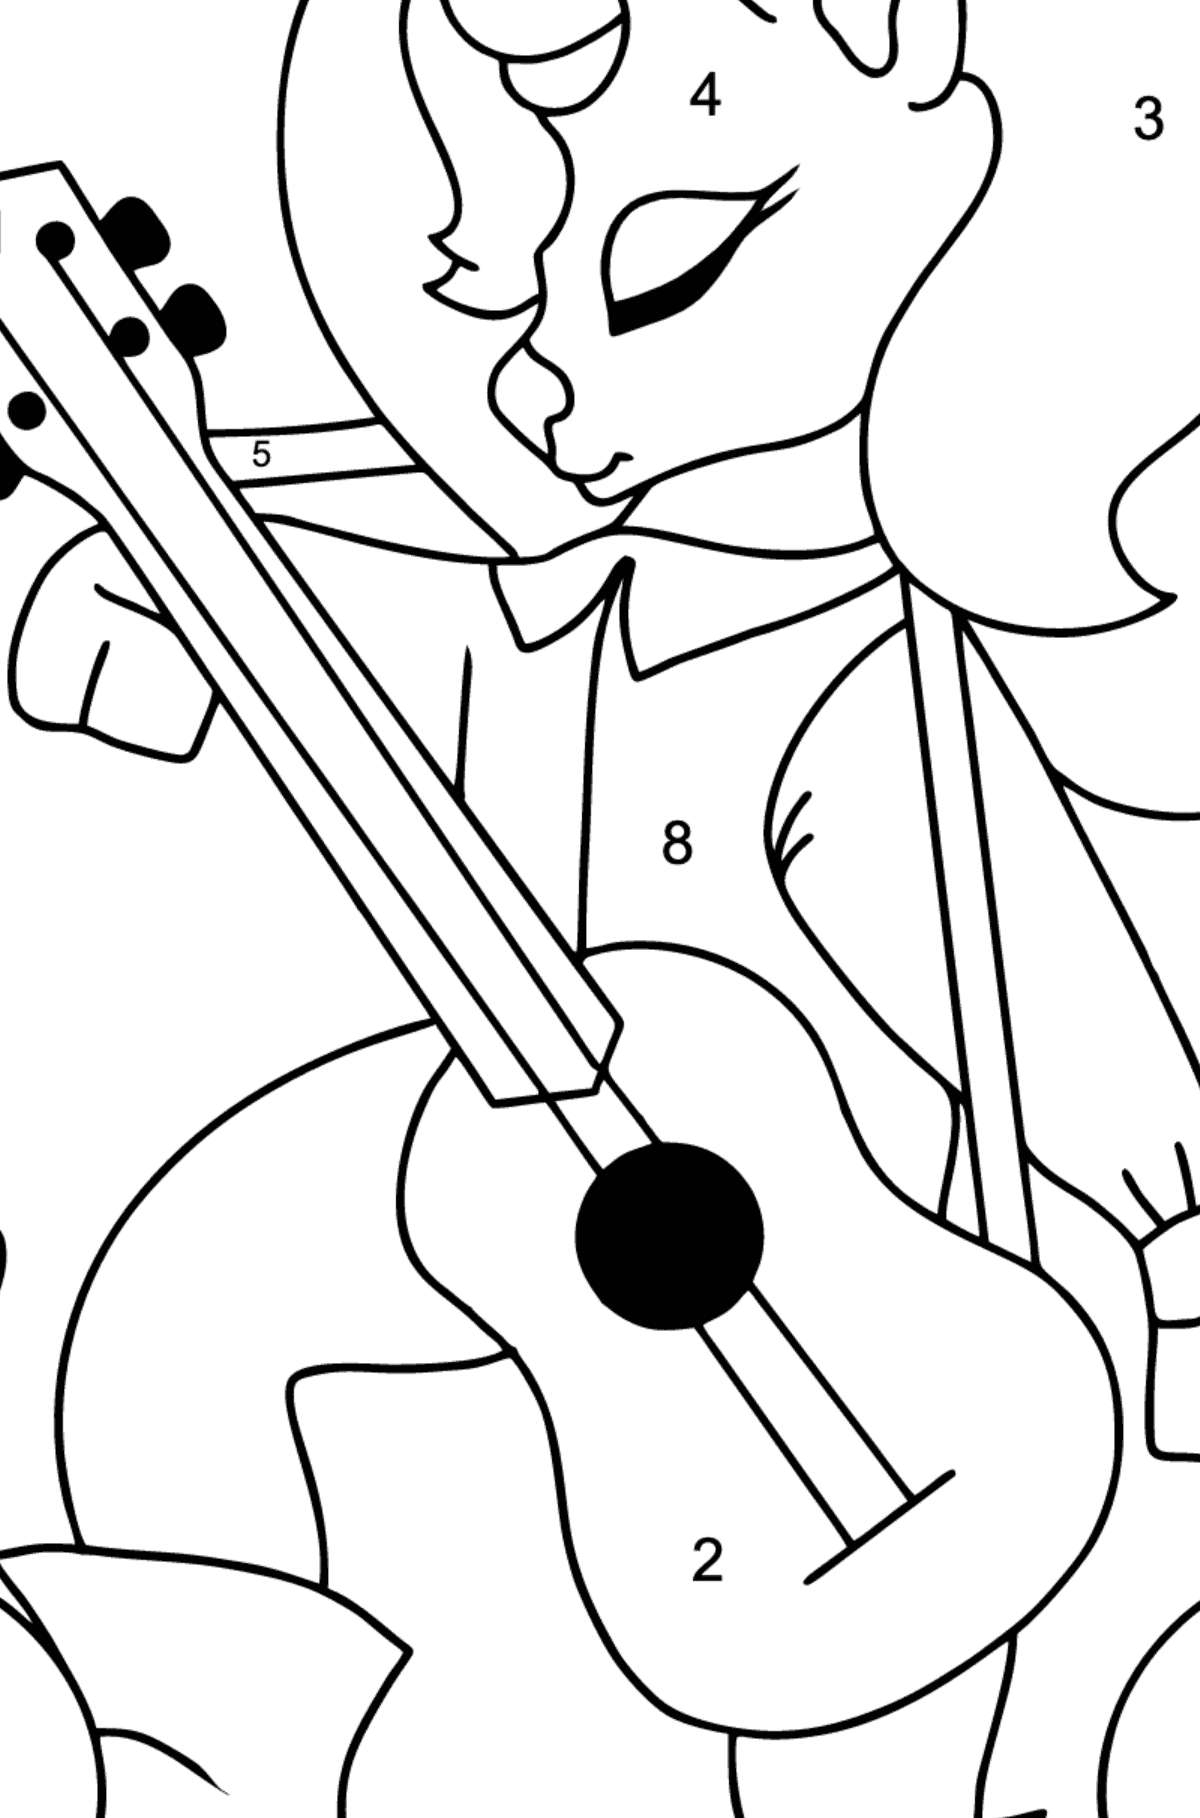 Simple Coloring Page - A Unicorn with a Guitar for Kids  - Color by Number